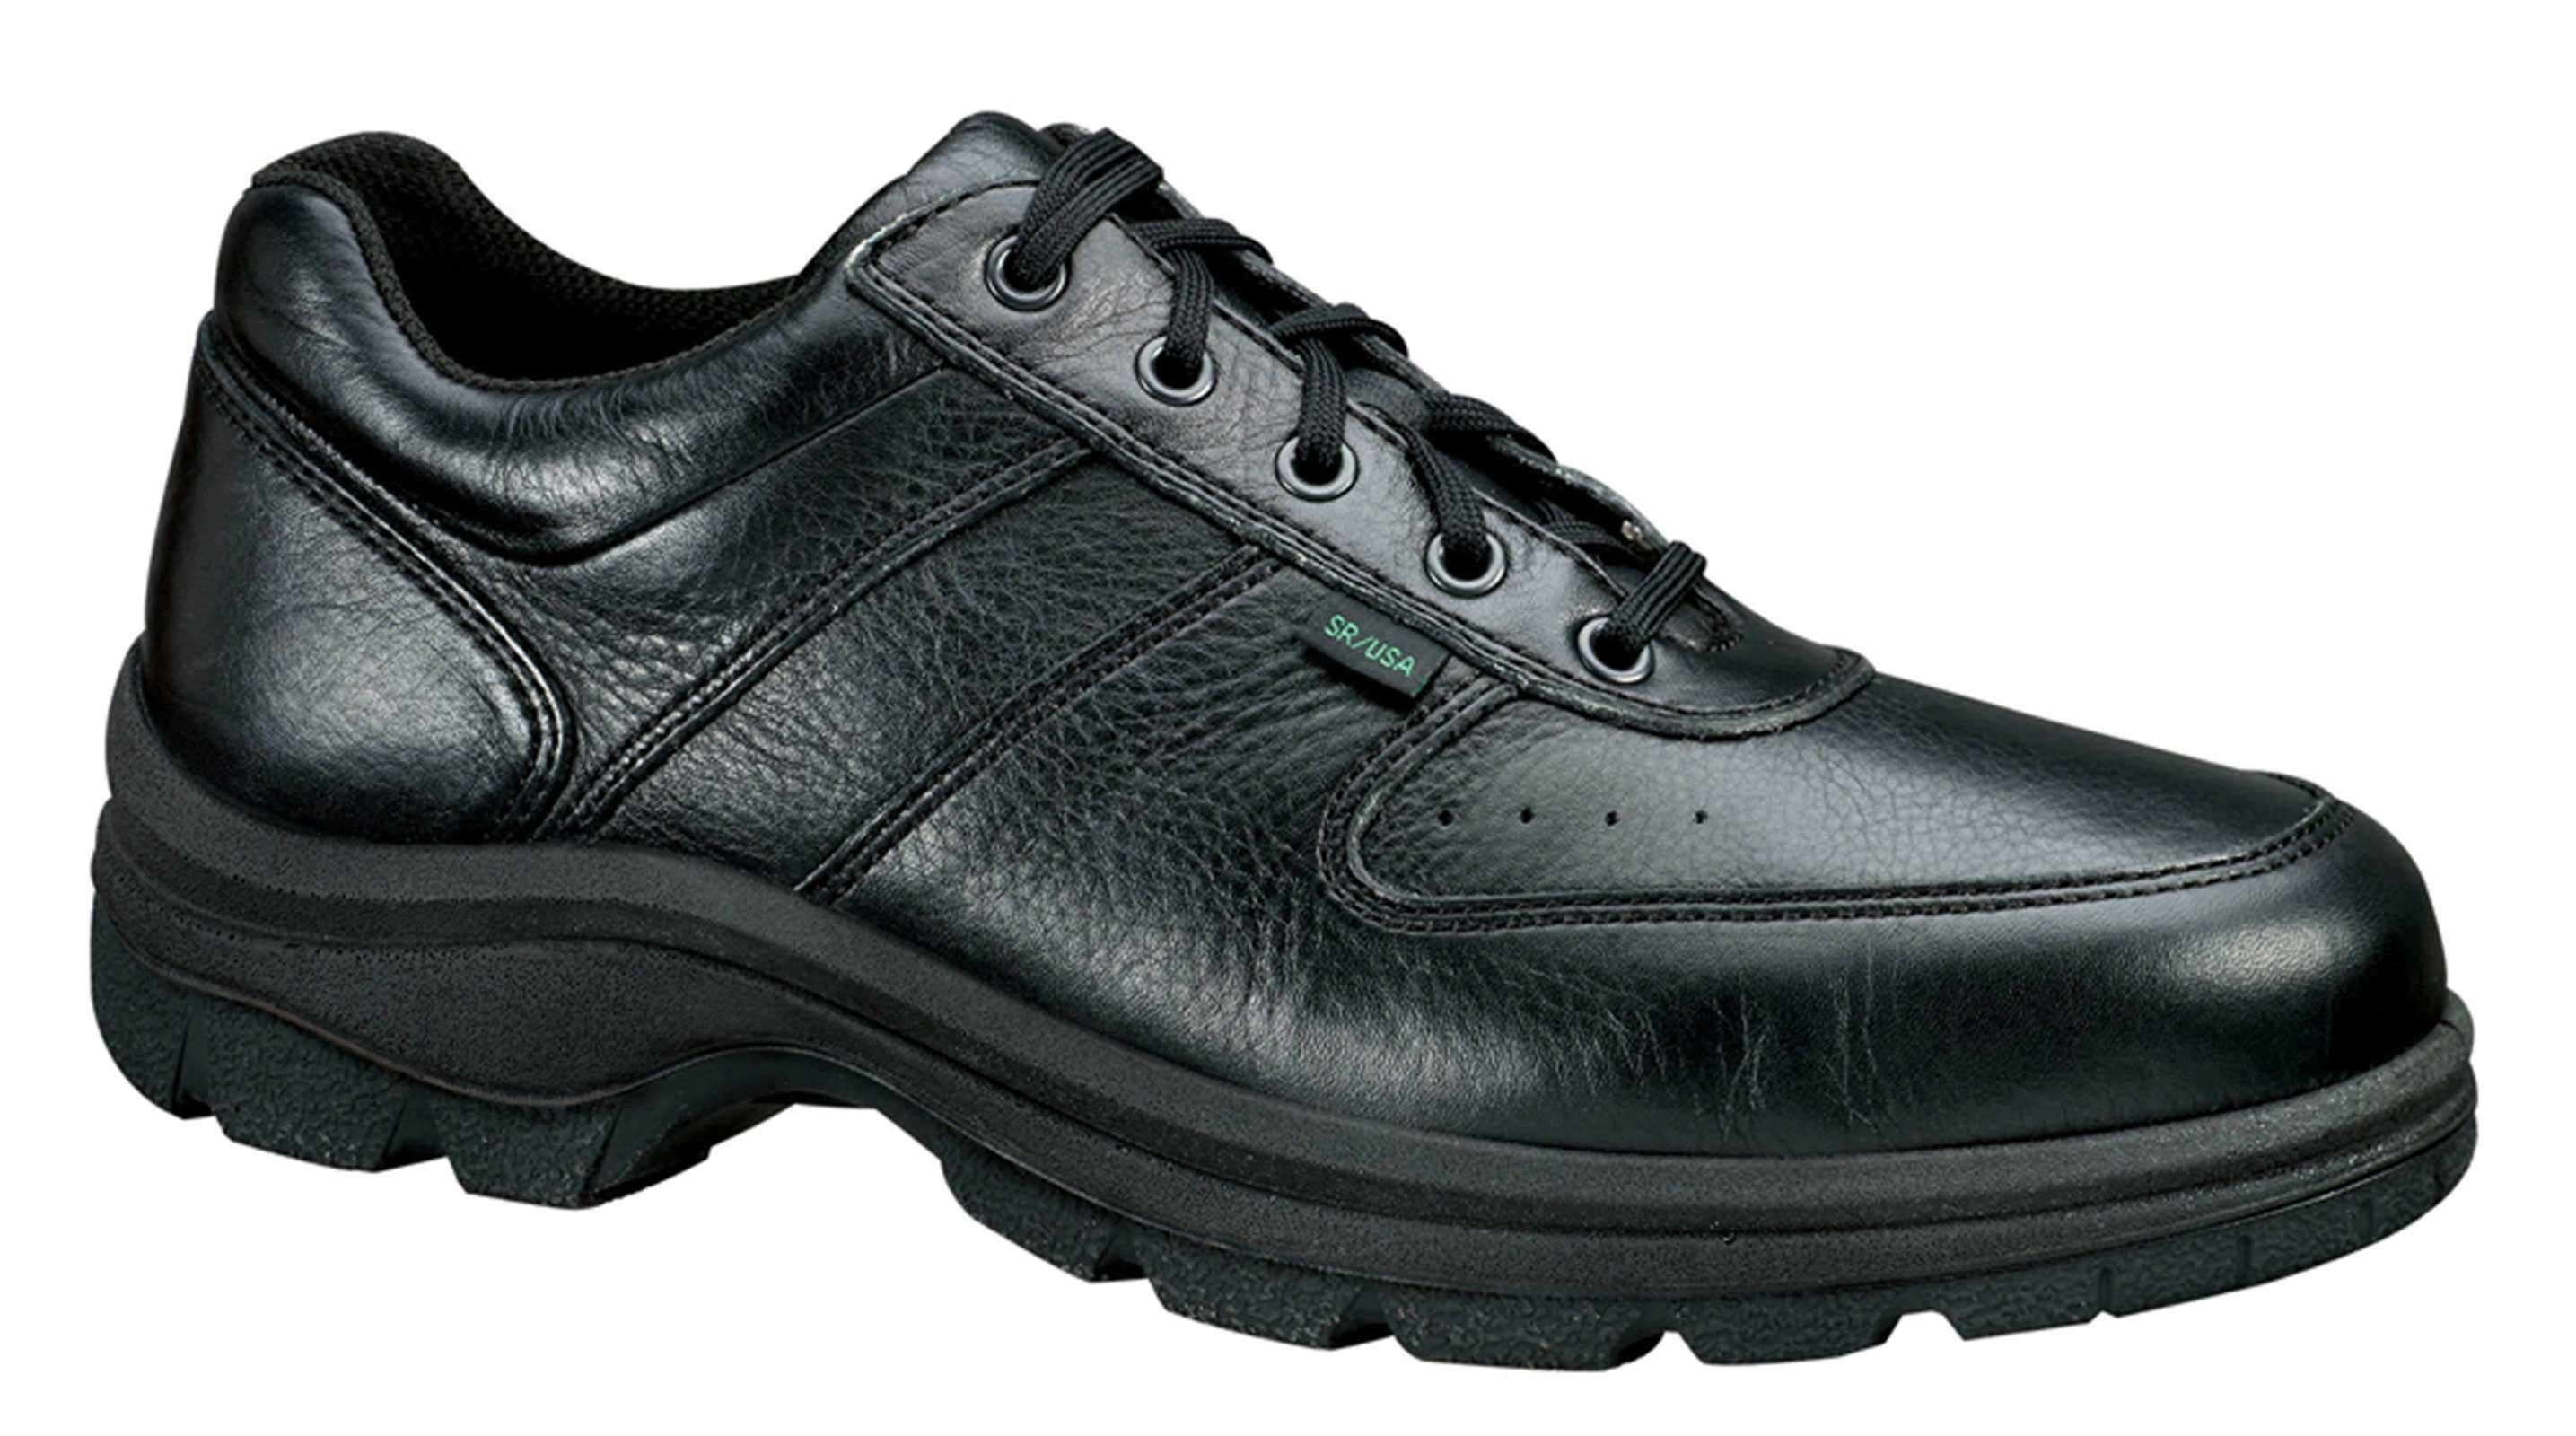 de1d5c13a82 PREVIEWING ICS Active Mobile Theme: Thorogood Oxford Work Shoes ...